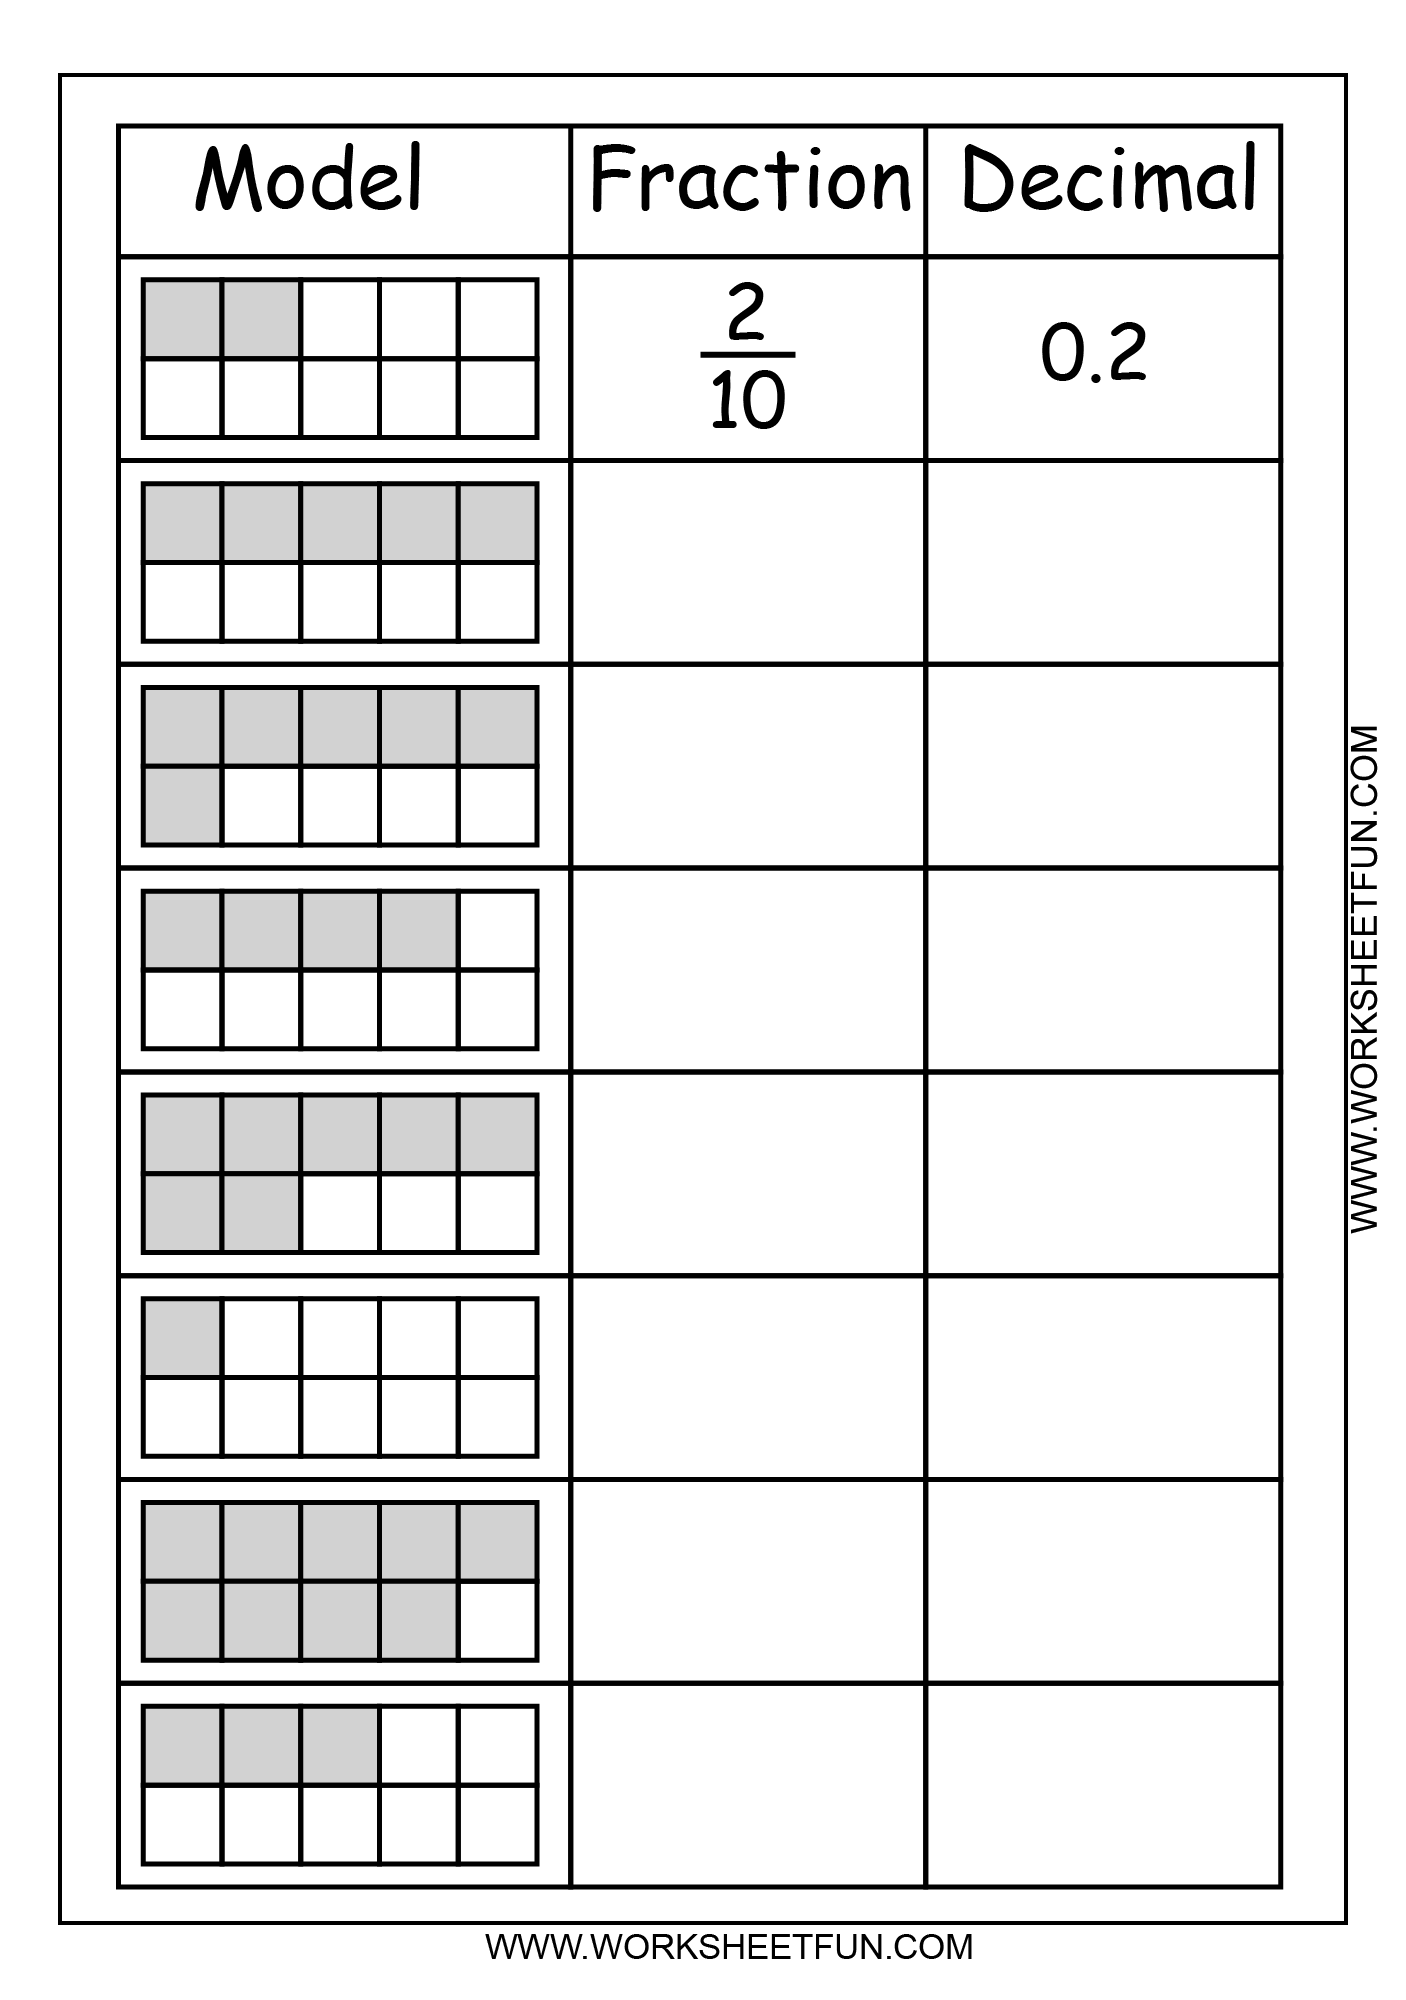 Worksheet Fractions And Decimal Worksheets 1000 images about decimal worksheets on pinterest fractions and worksheets